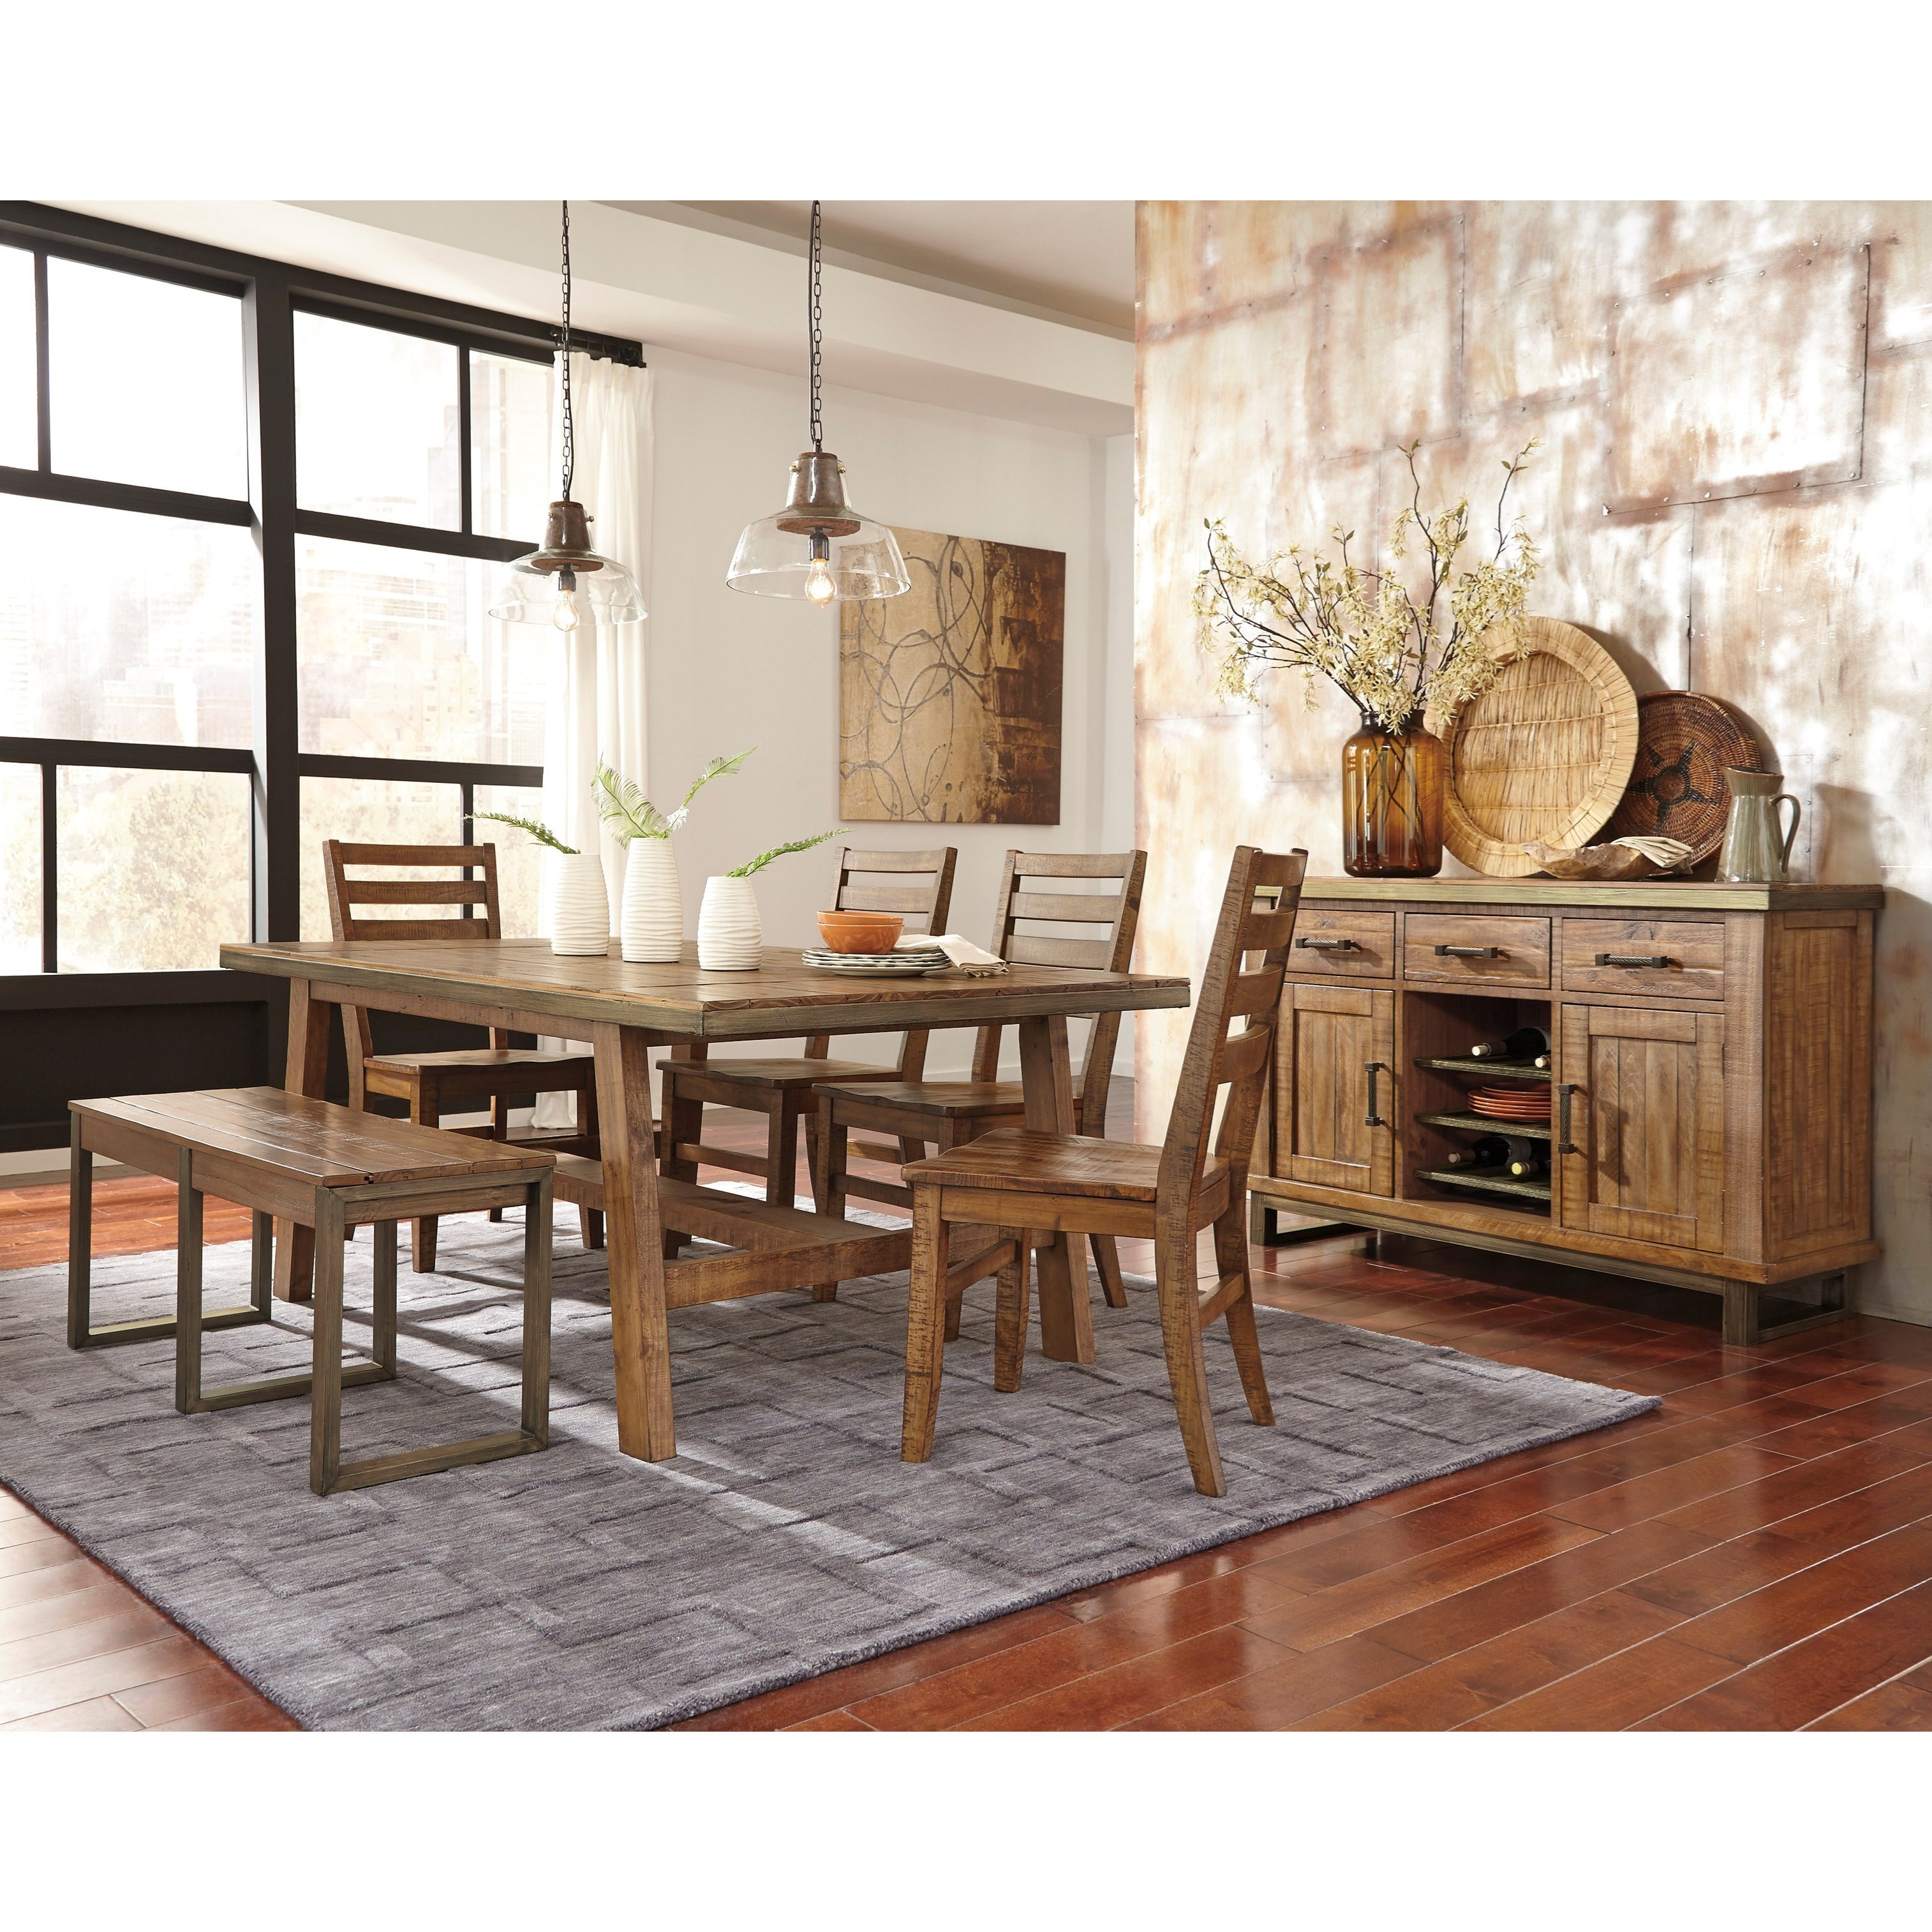 signature design by ashley dondie casual dining room group signature design by ashley gavelston casual dining room